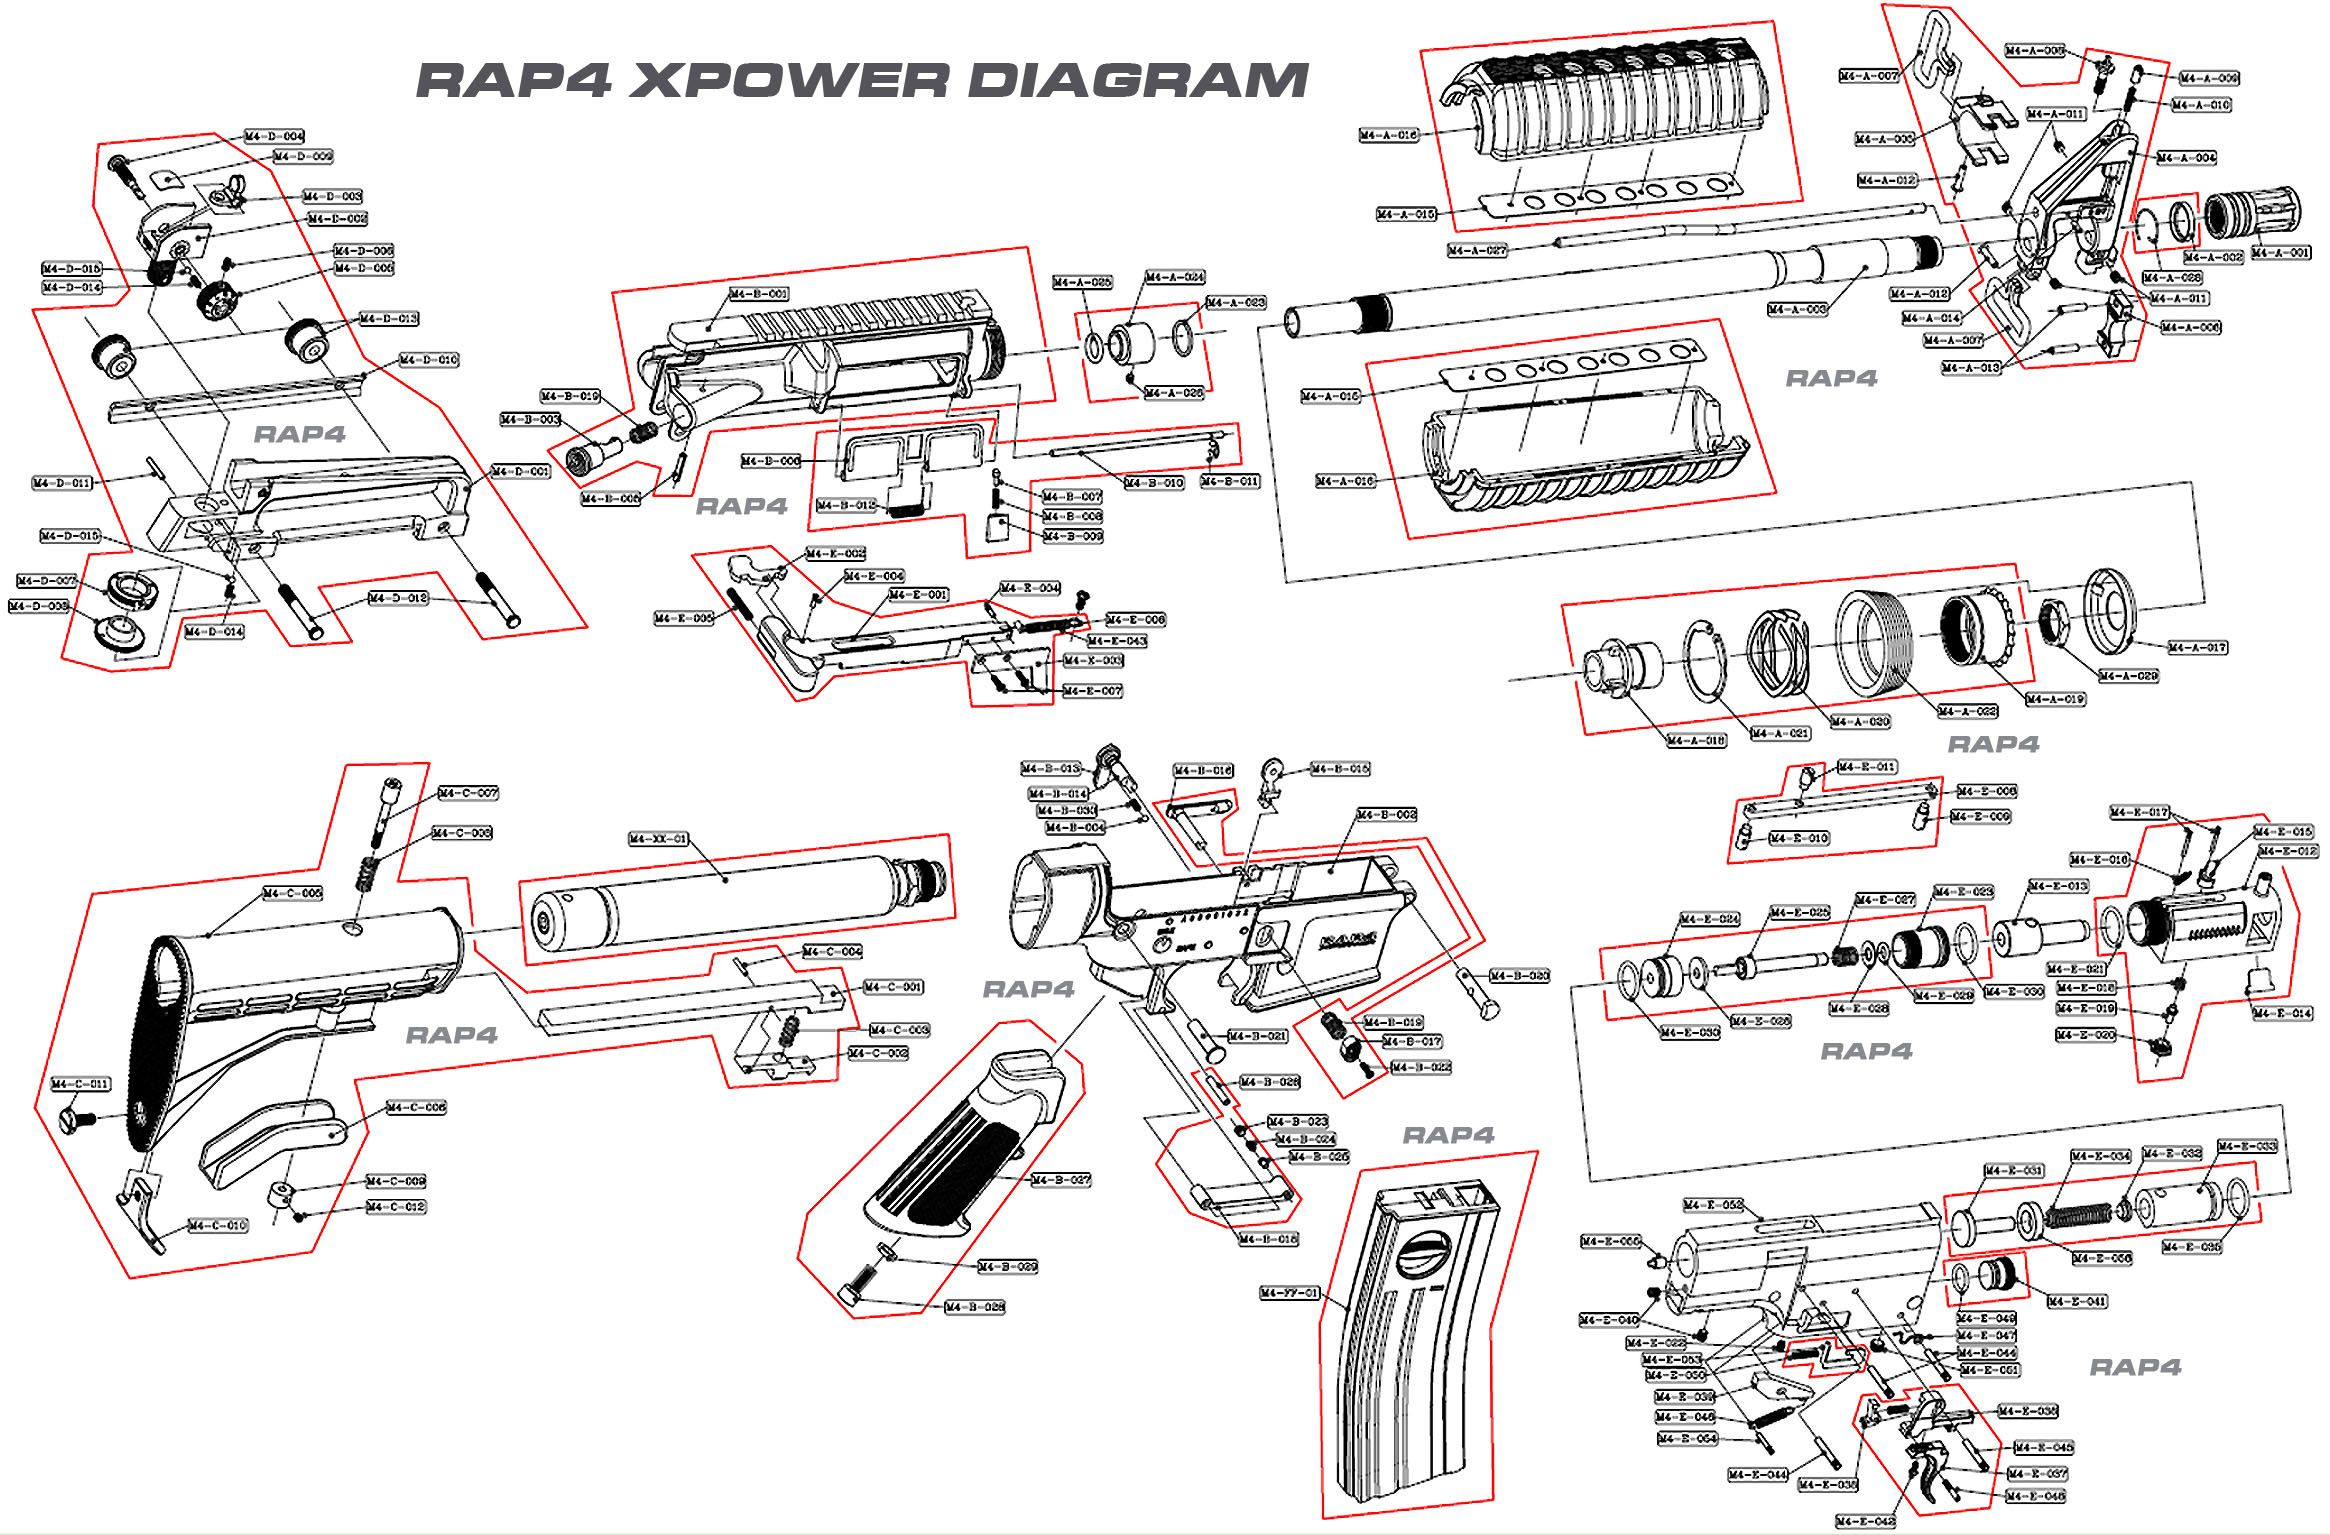 ruger ar 15 exploded diagram meyer plow light wiring m4 carbine schematic military pinterest